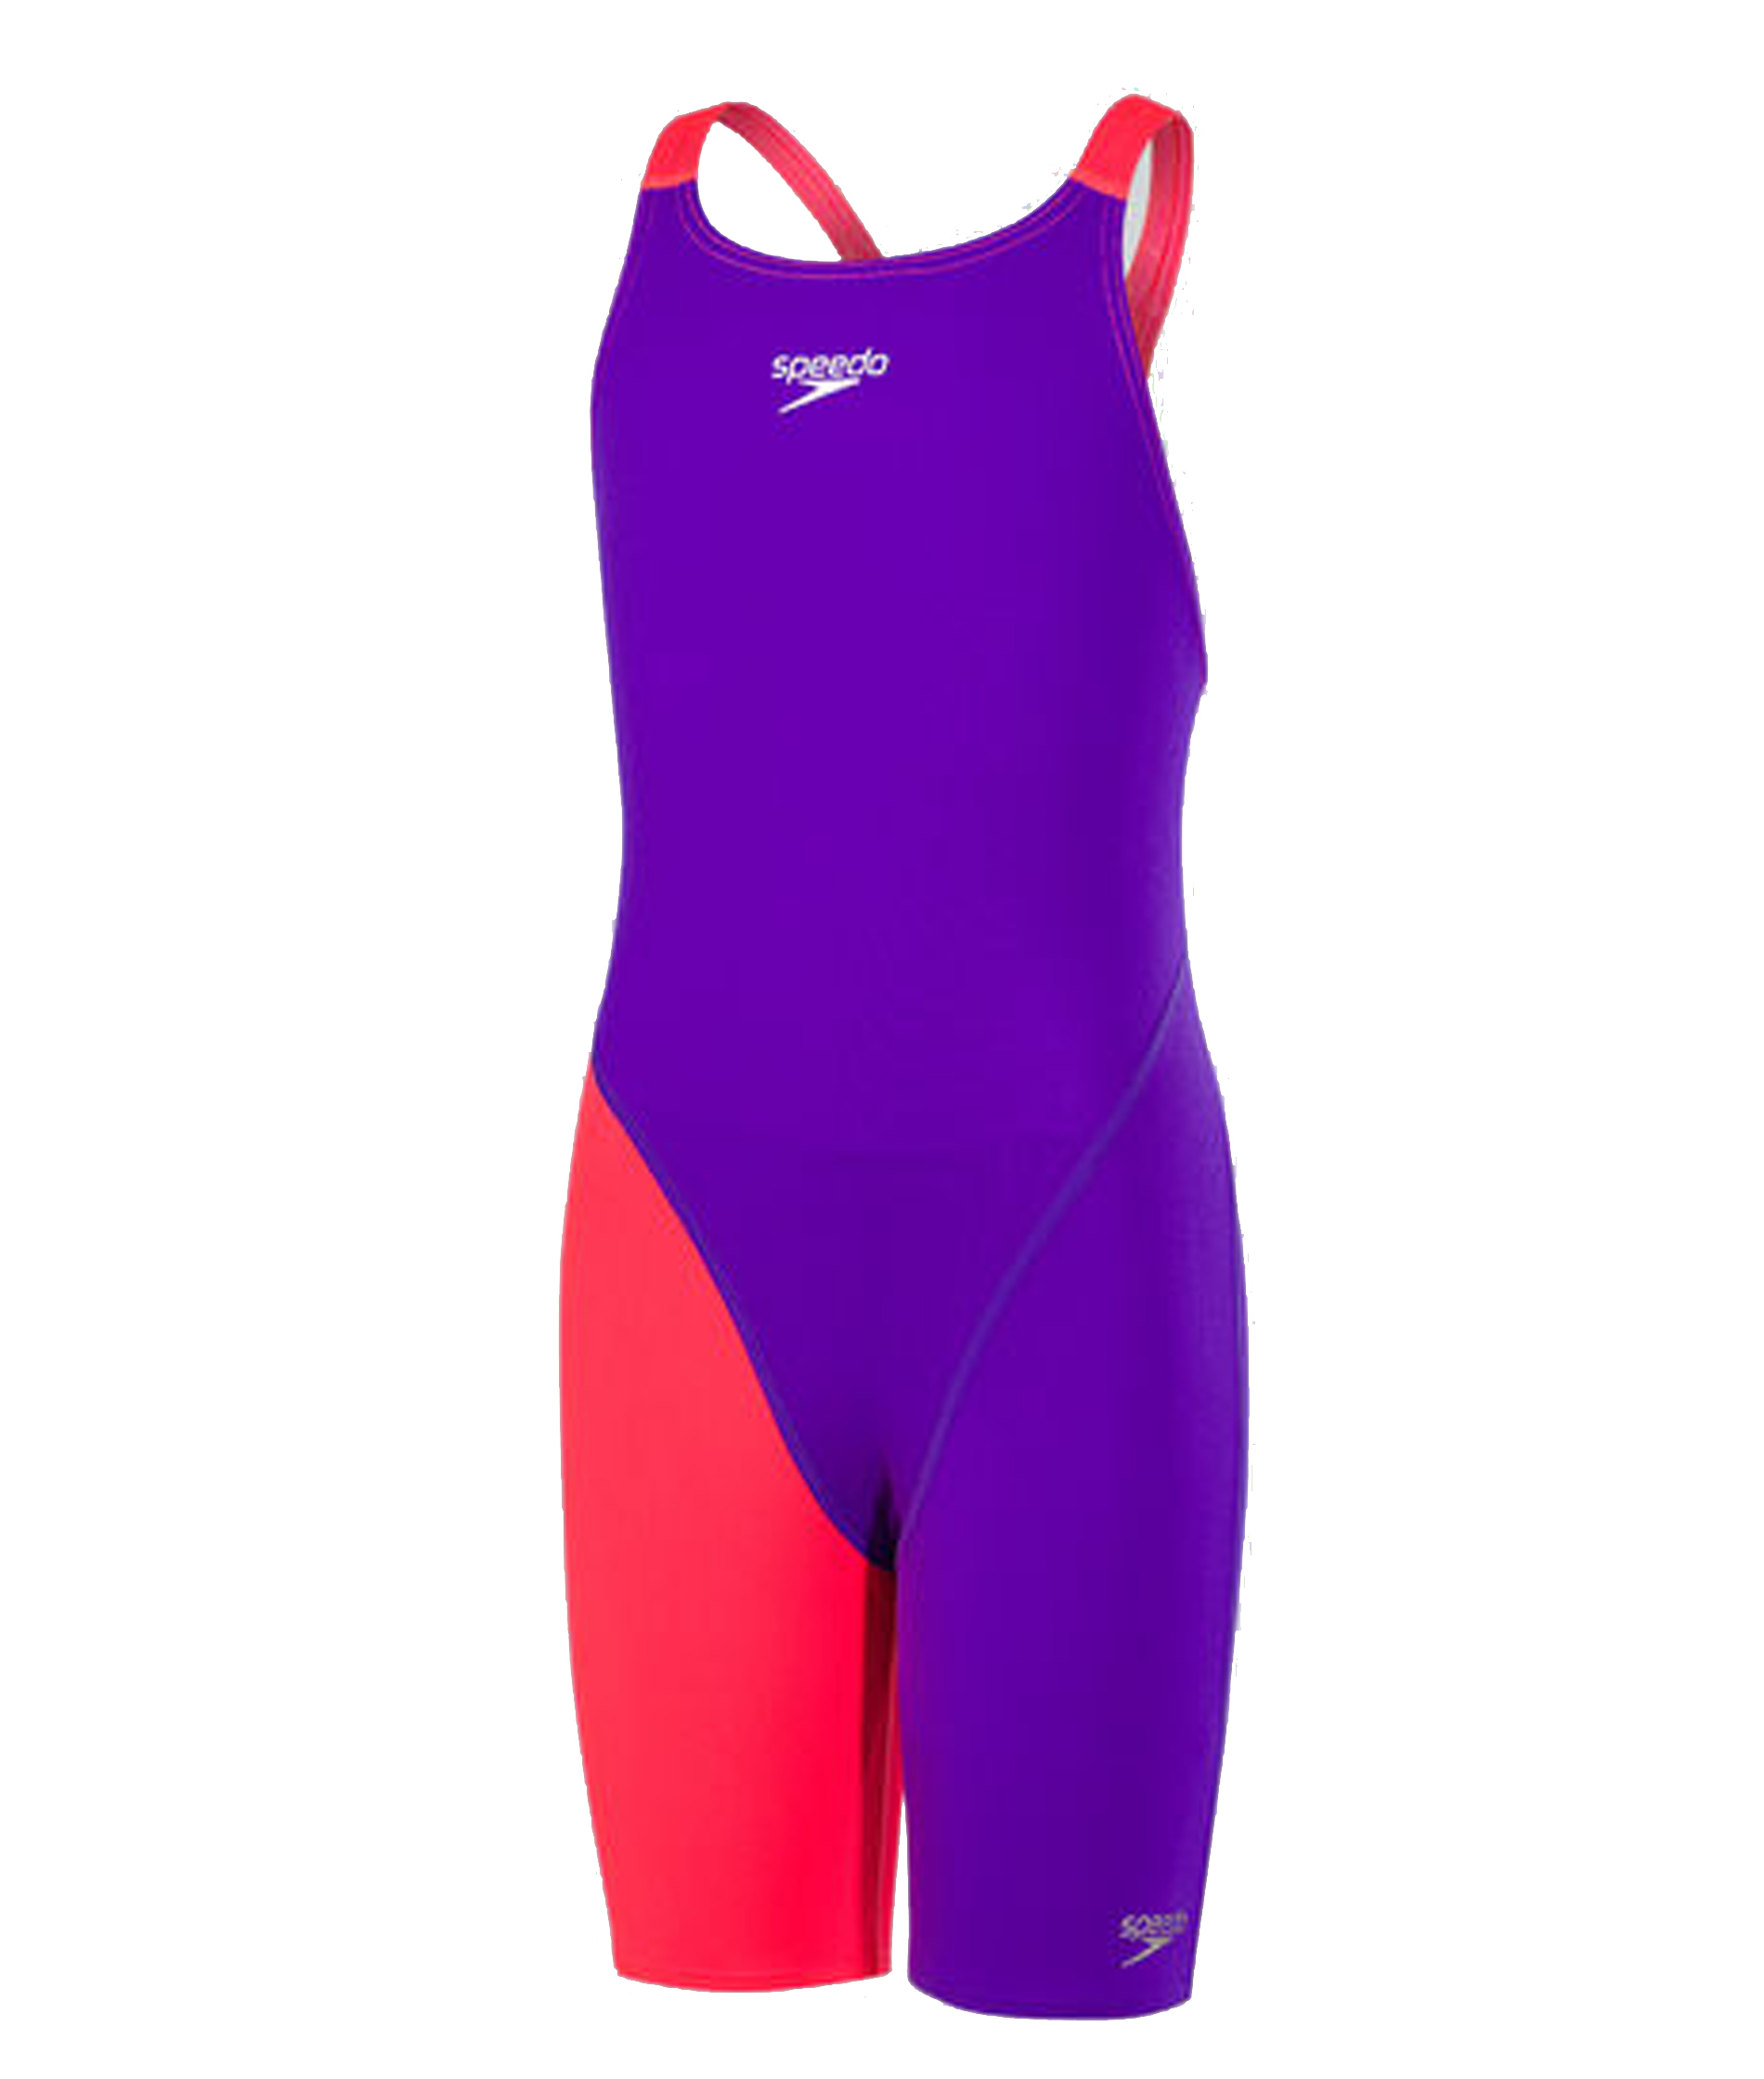 Speedo Junior Fastskin Endurance+ Openback Kneeskin - Purple/Red (32-34)